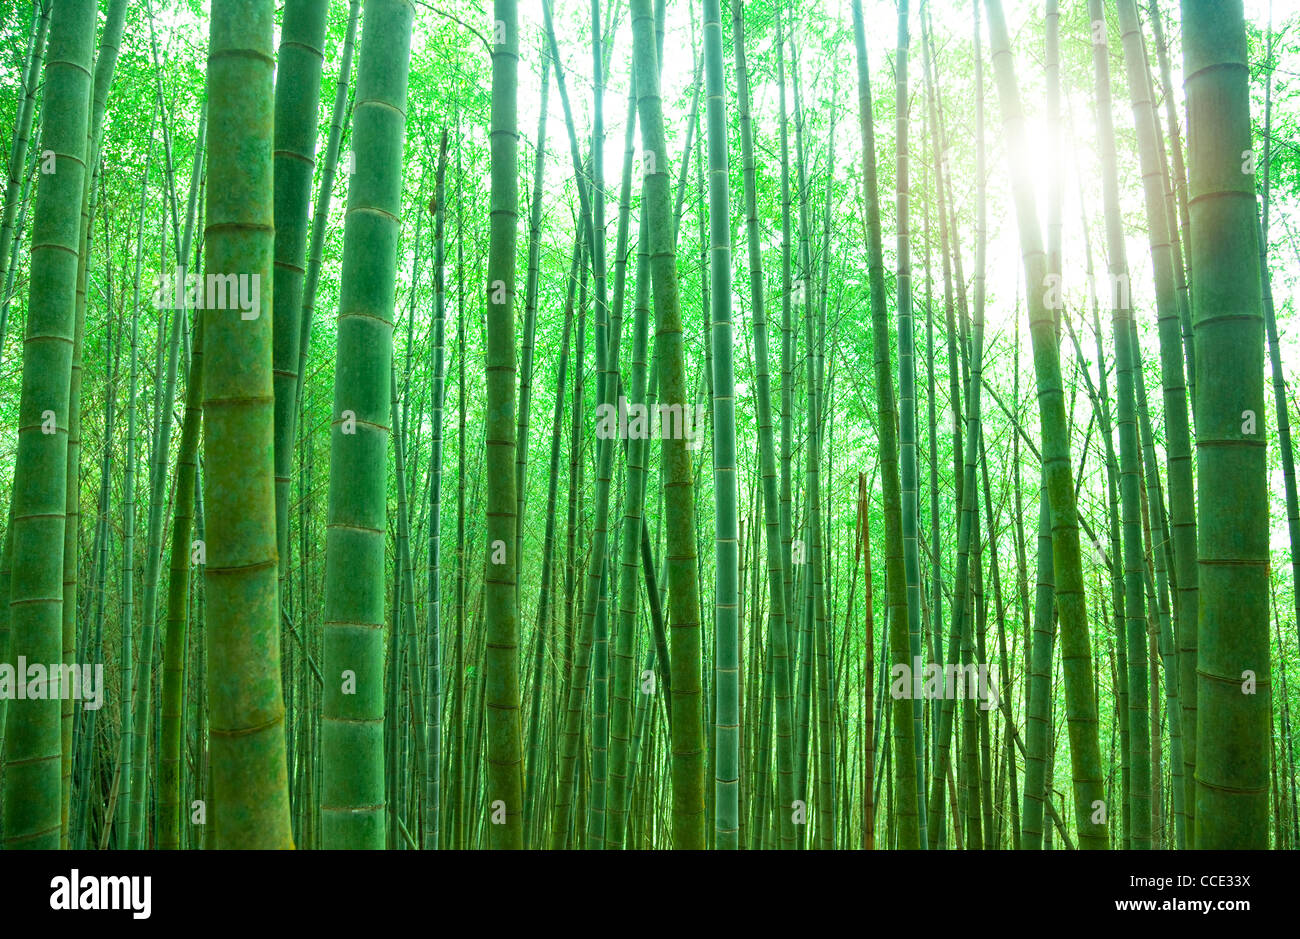 green bamboo forest with sunlight - Stock Image